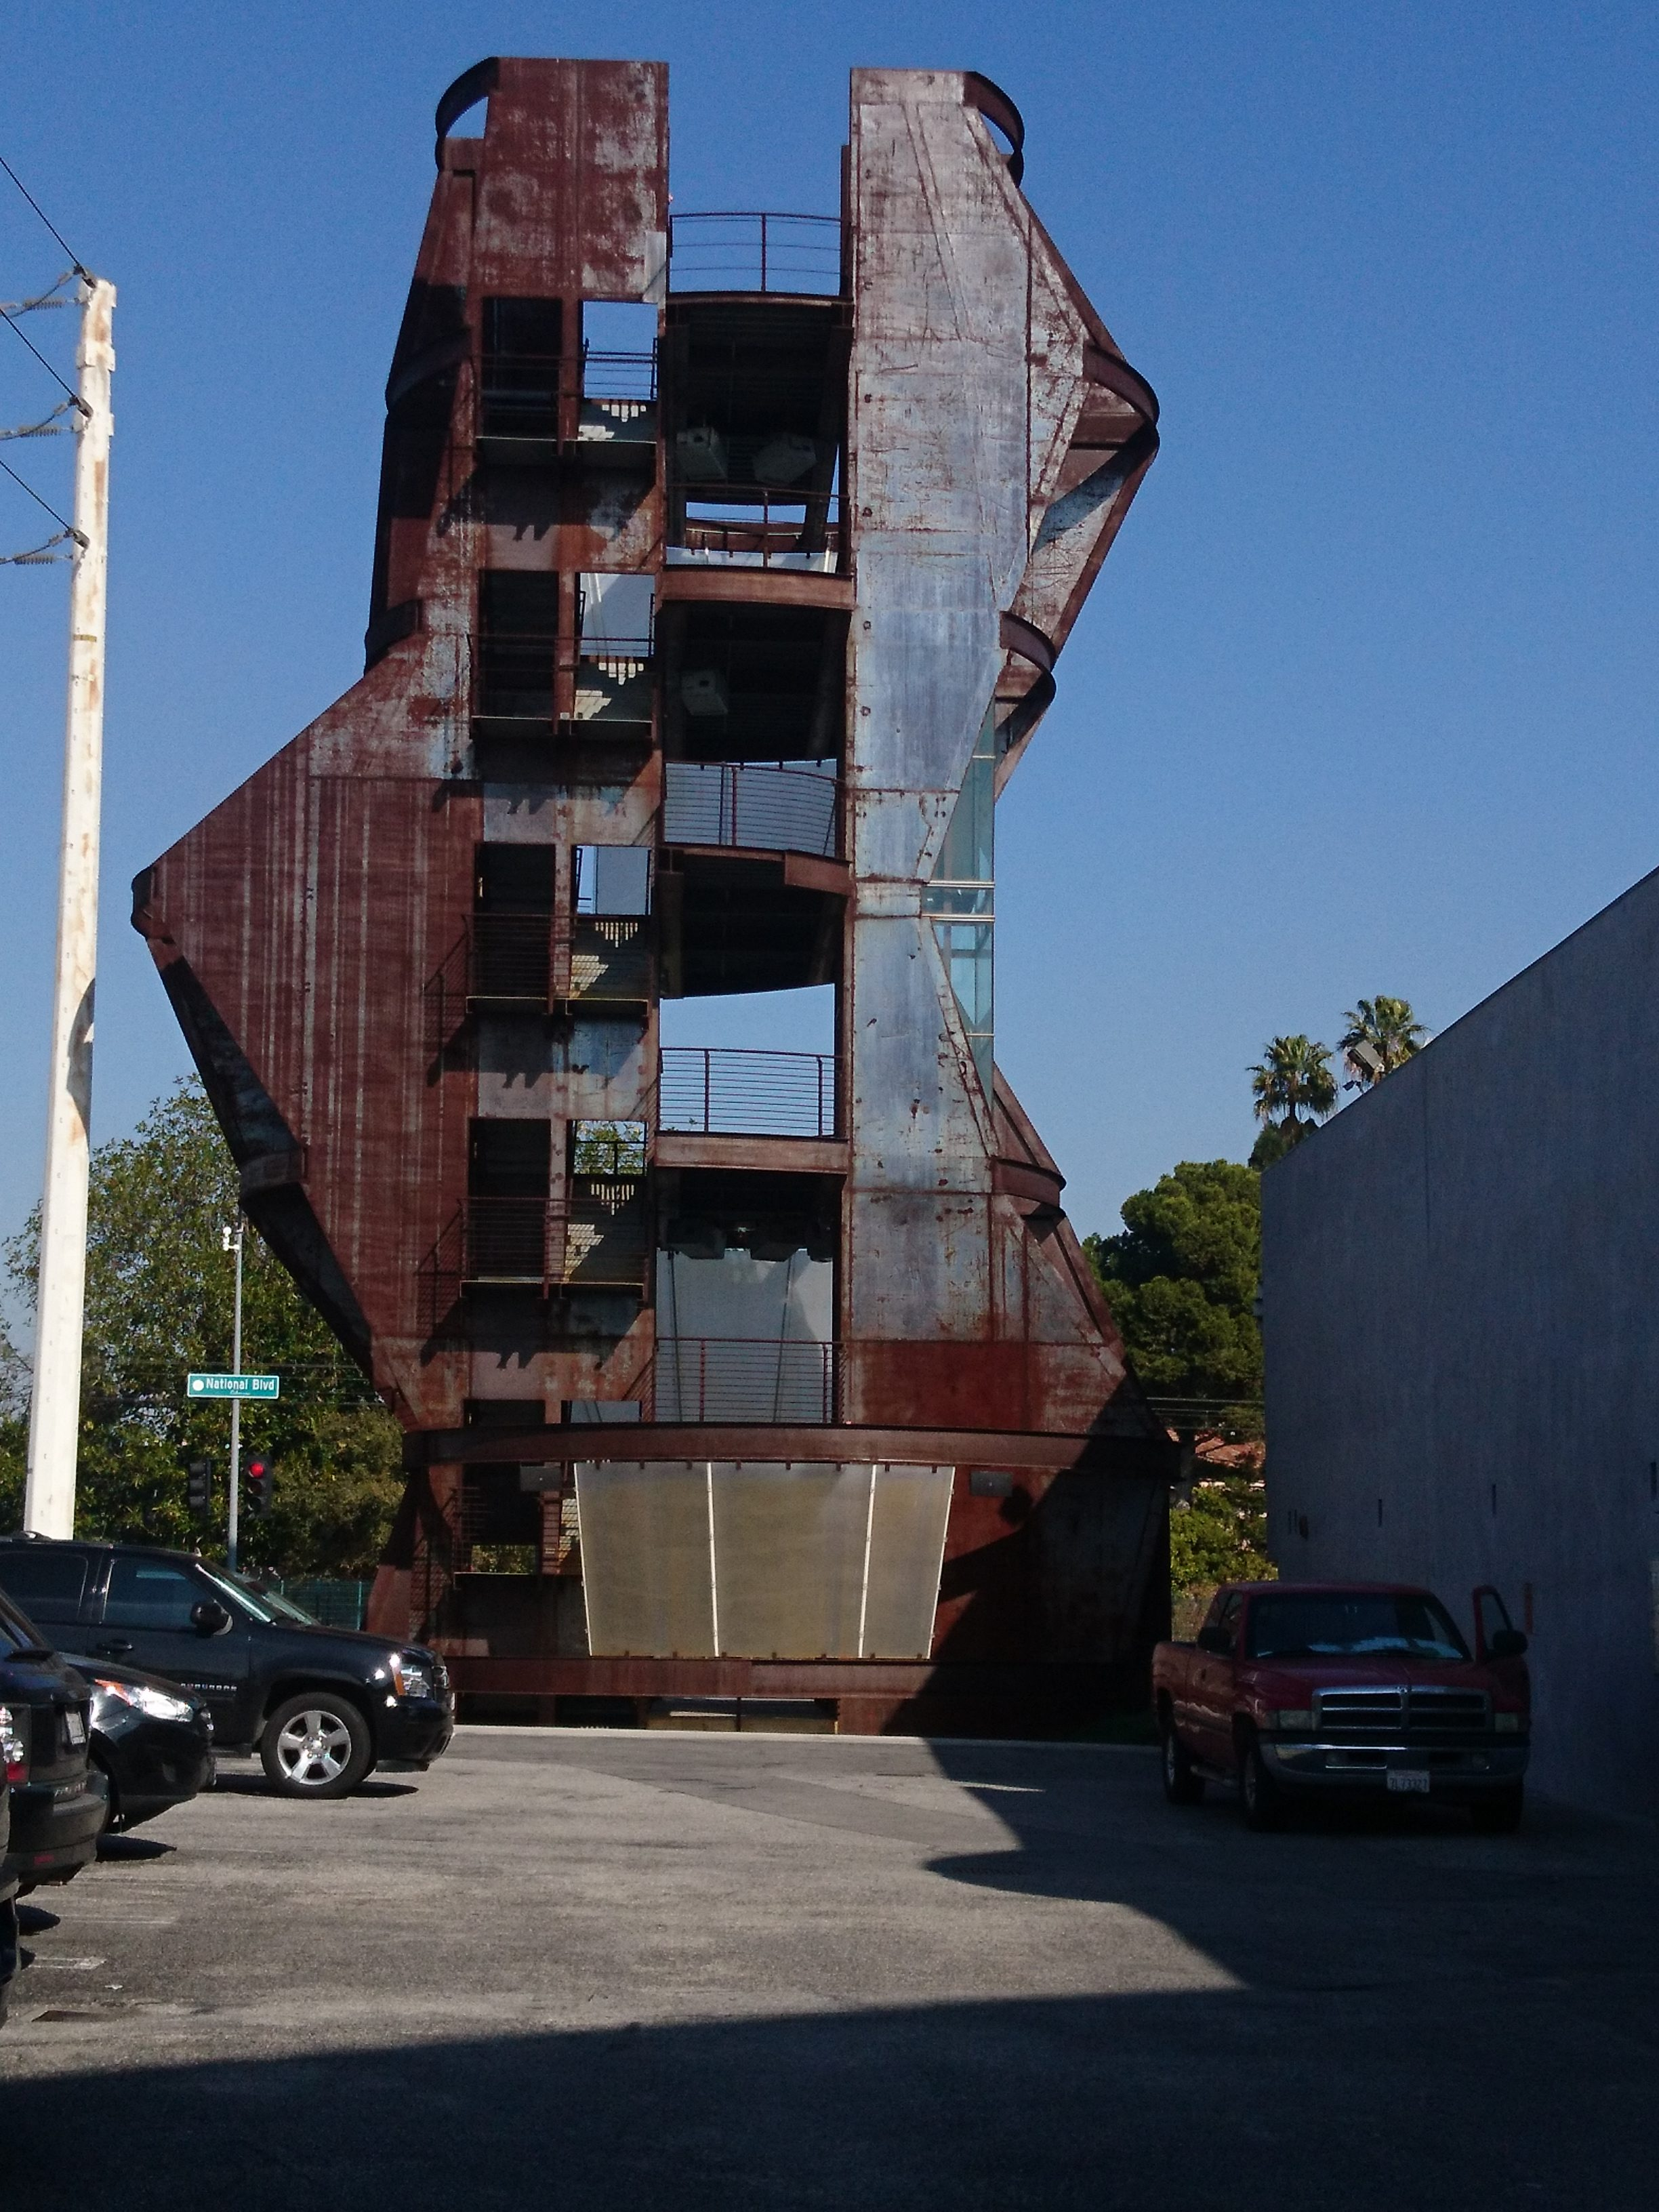 deconstructivism architecture in our backyard